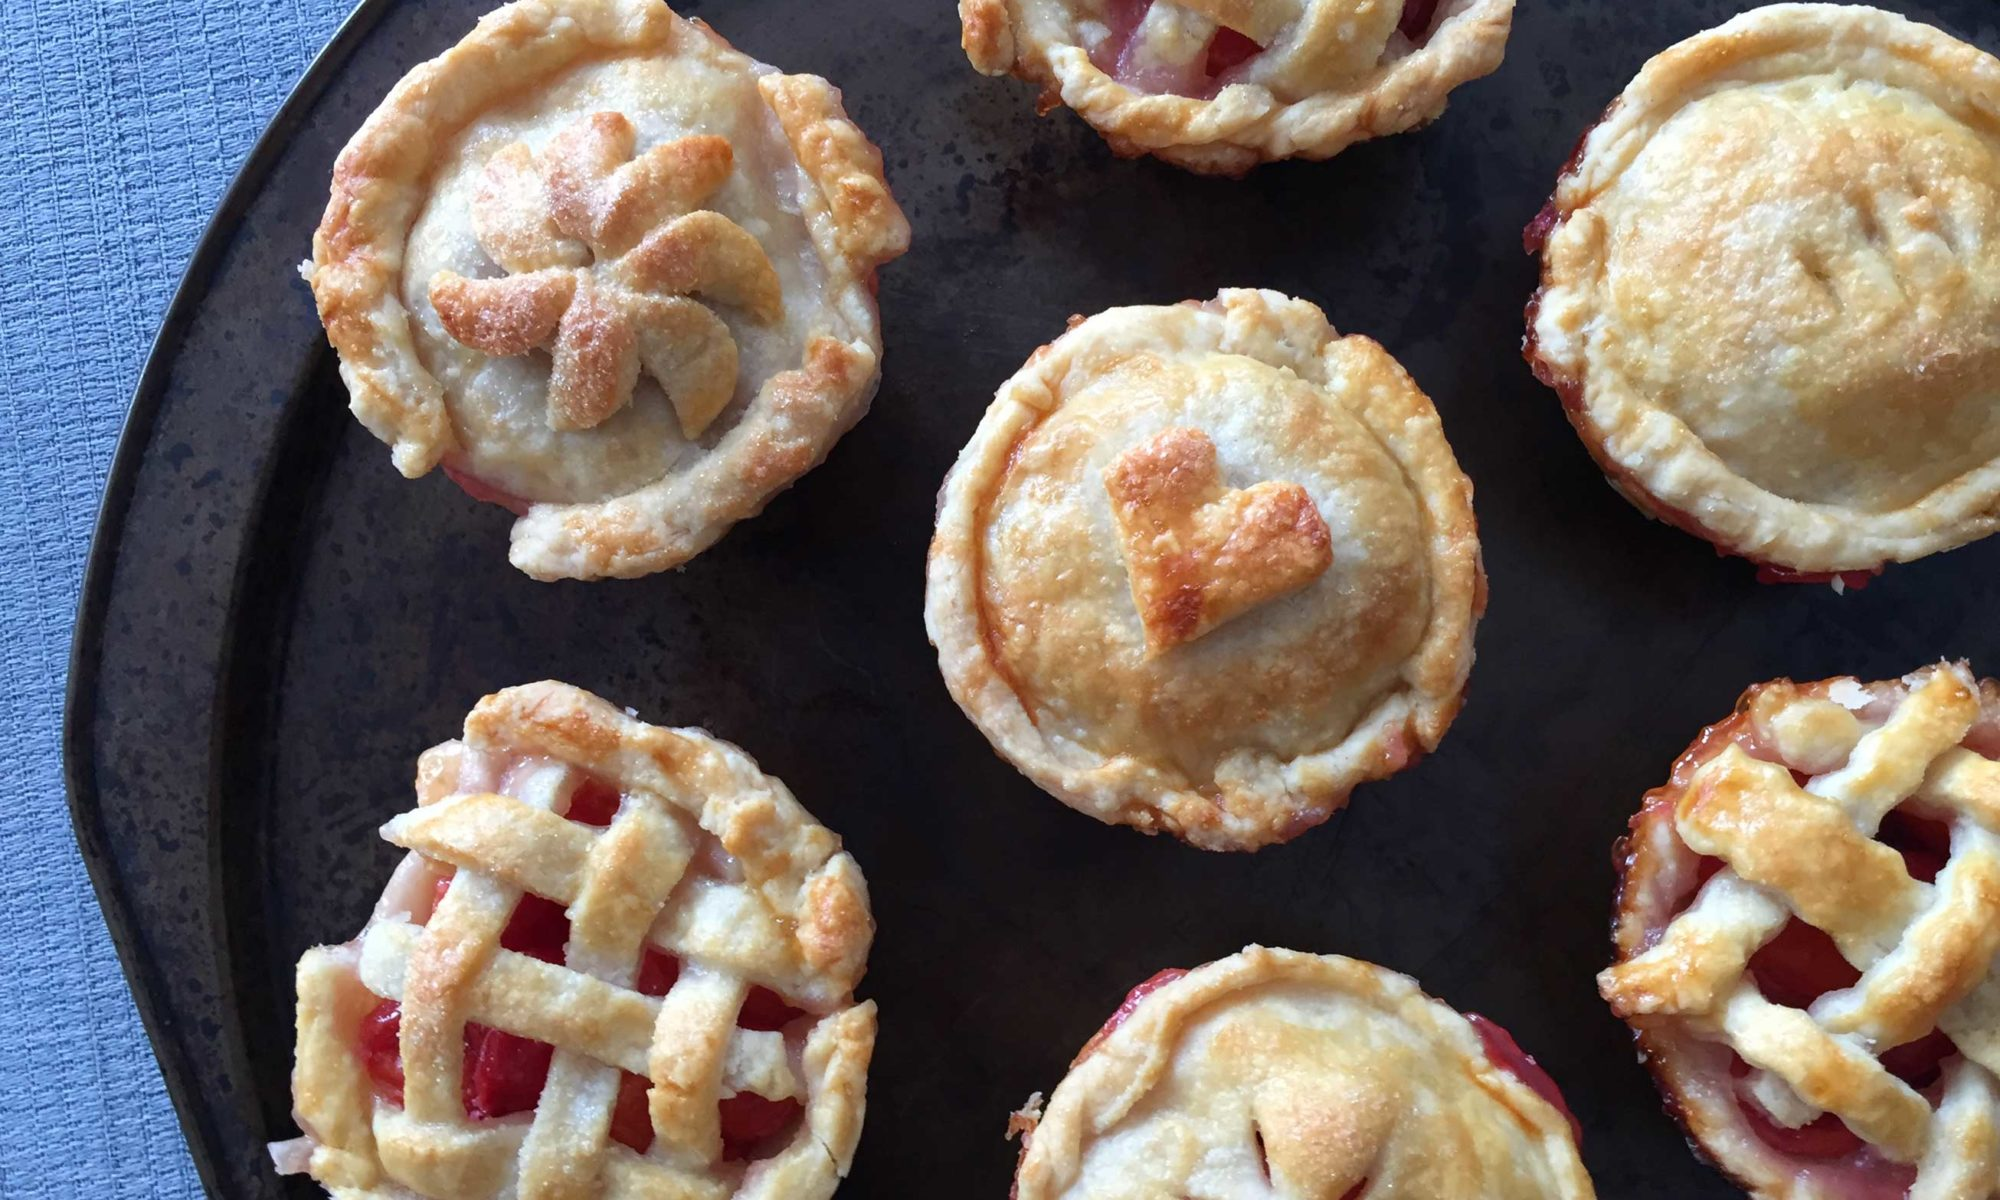 The mini sour cherry pies fresh from the oven